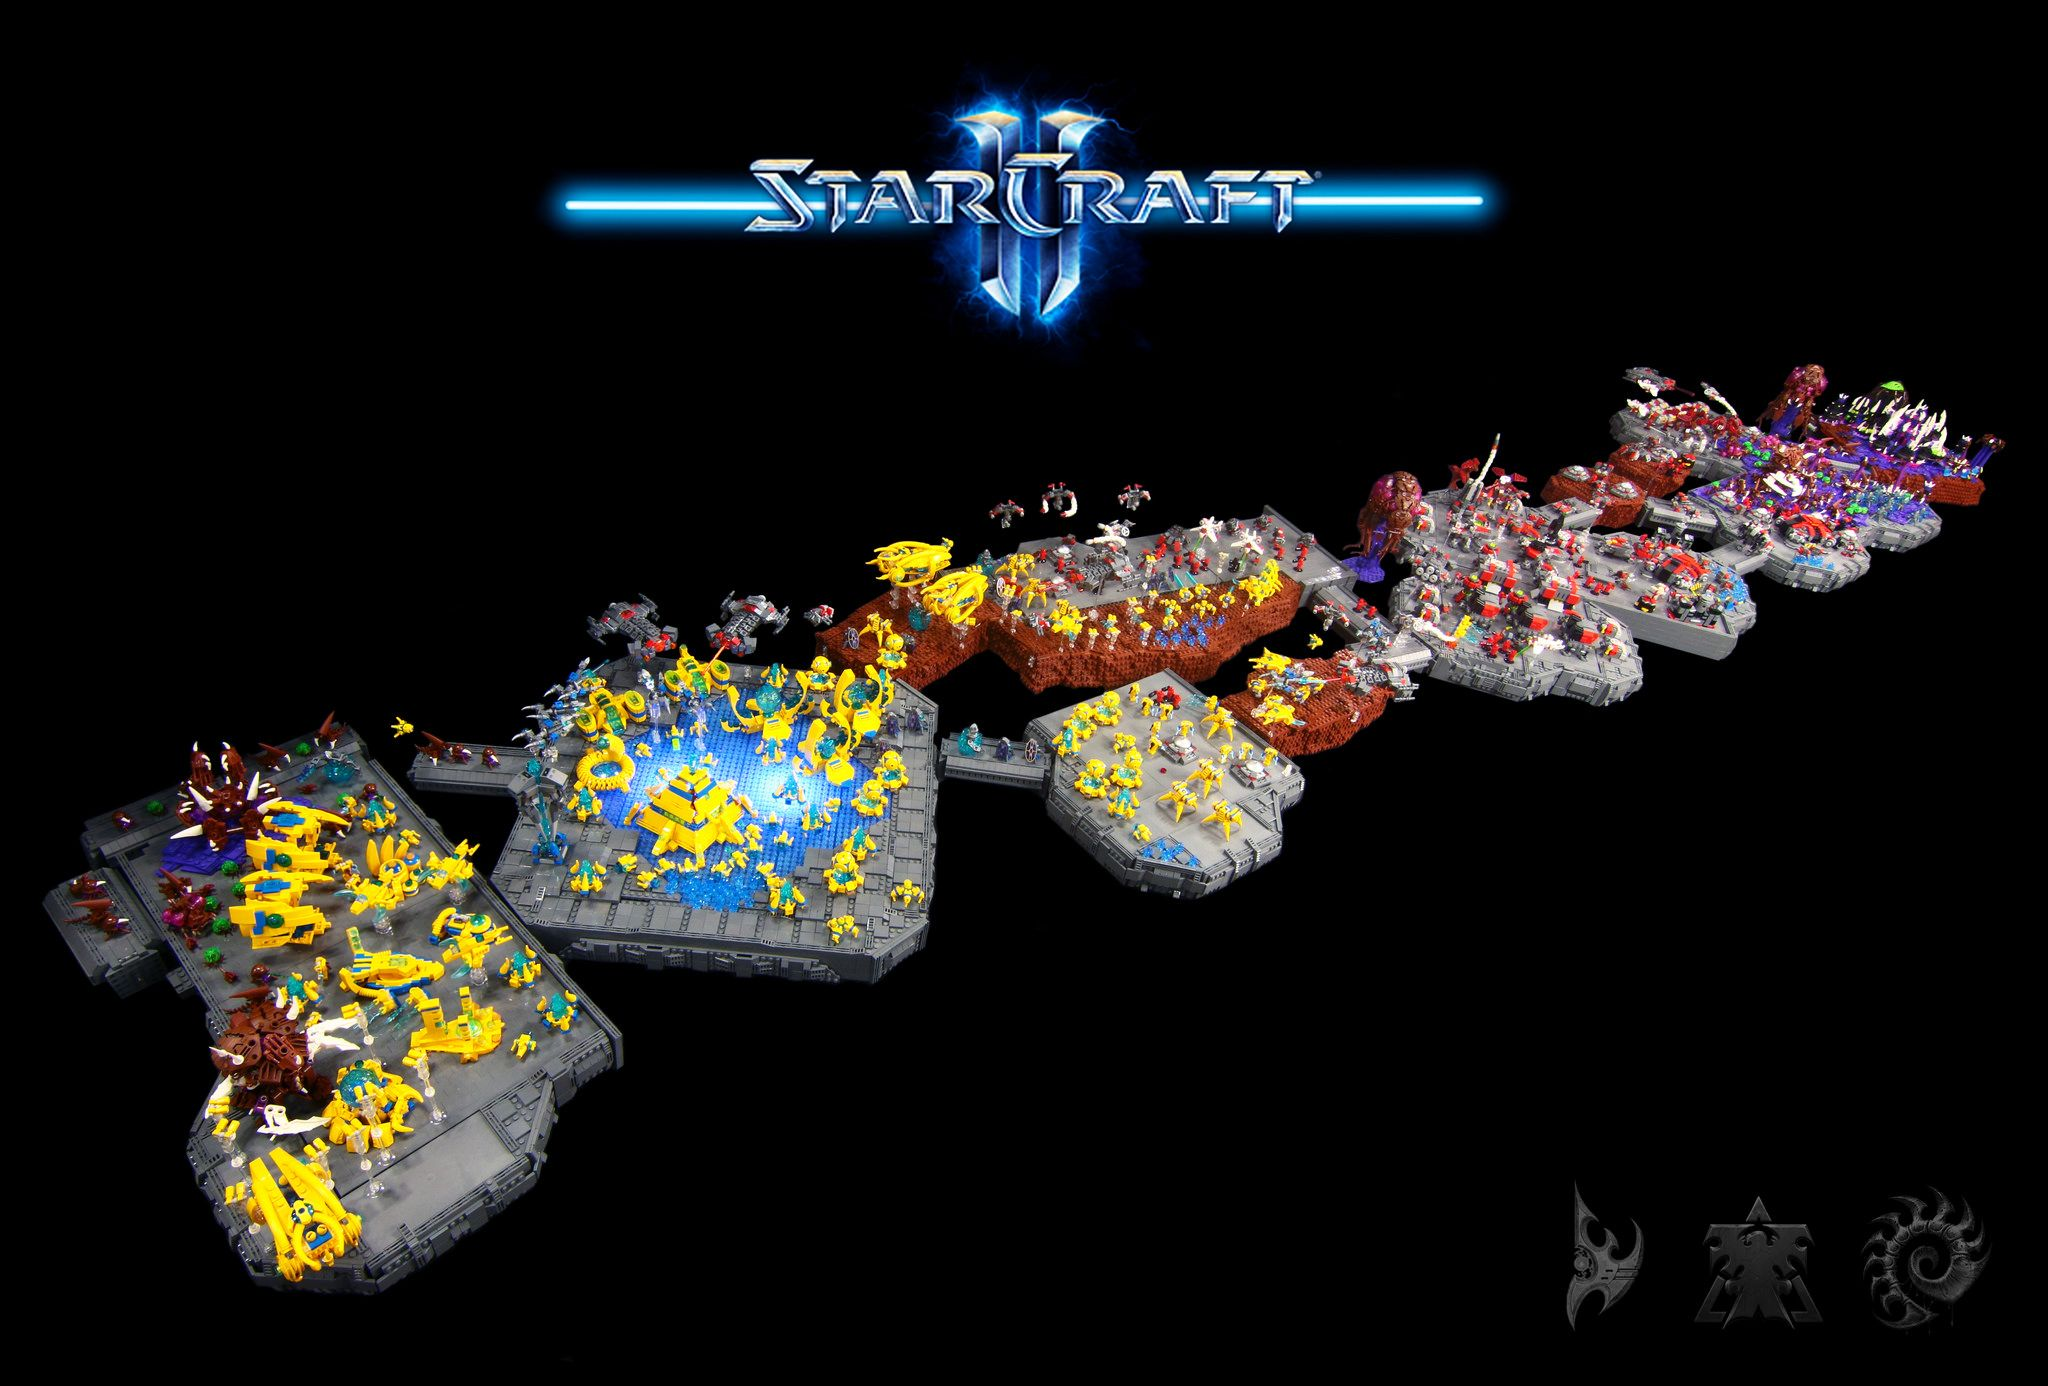 Lego Starcraft Legen Wait For It Dary Pinterest Starcraft